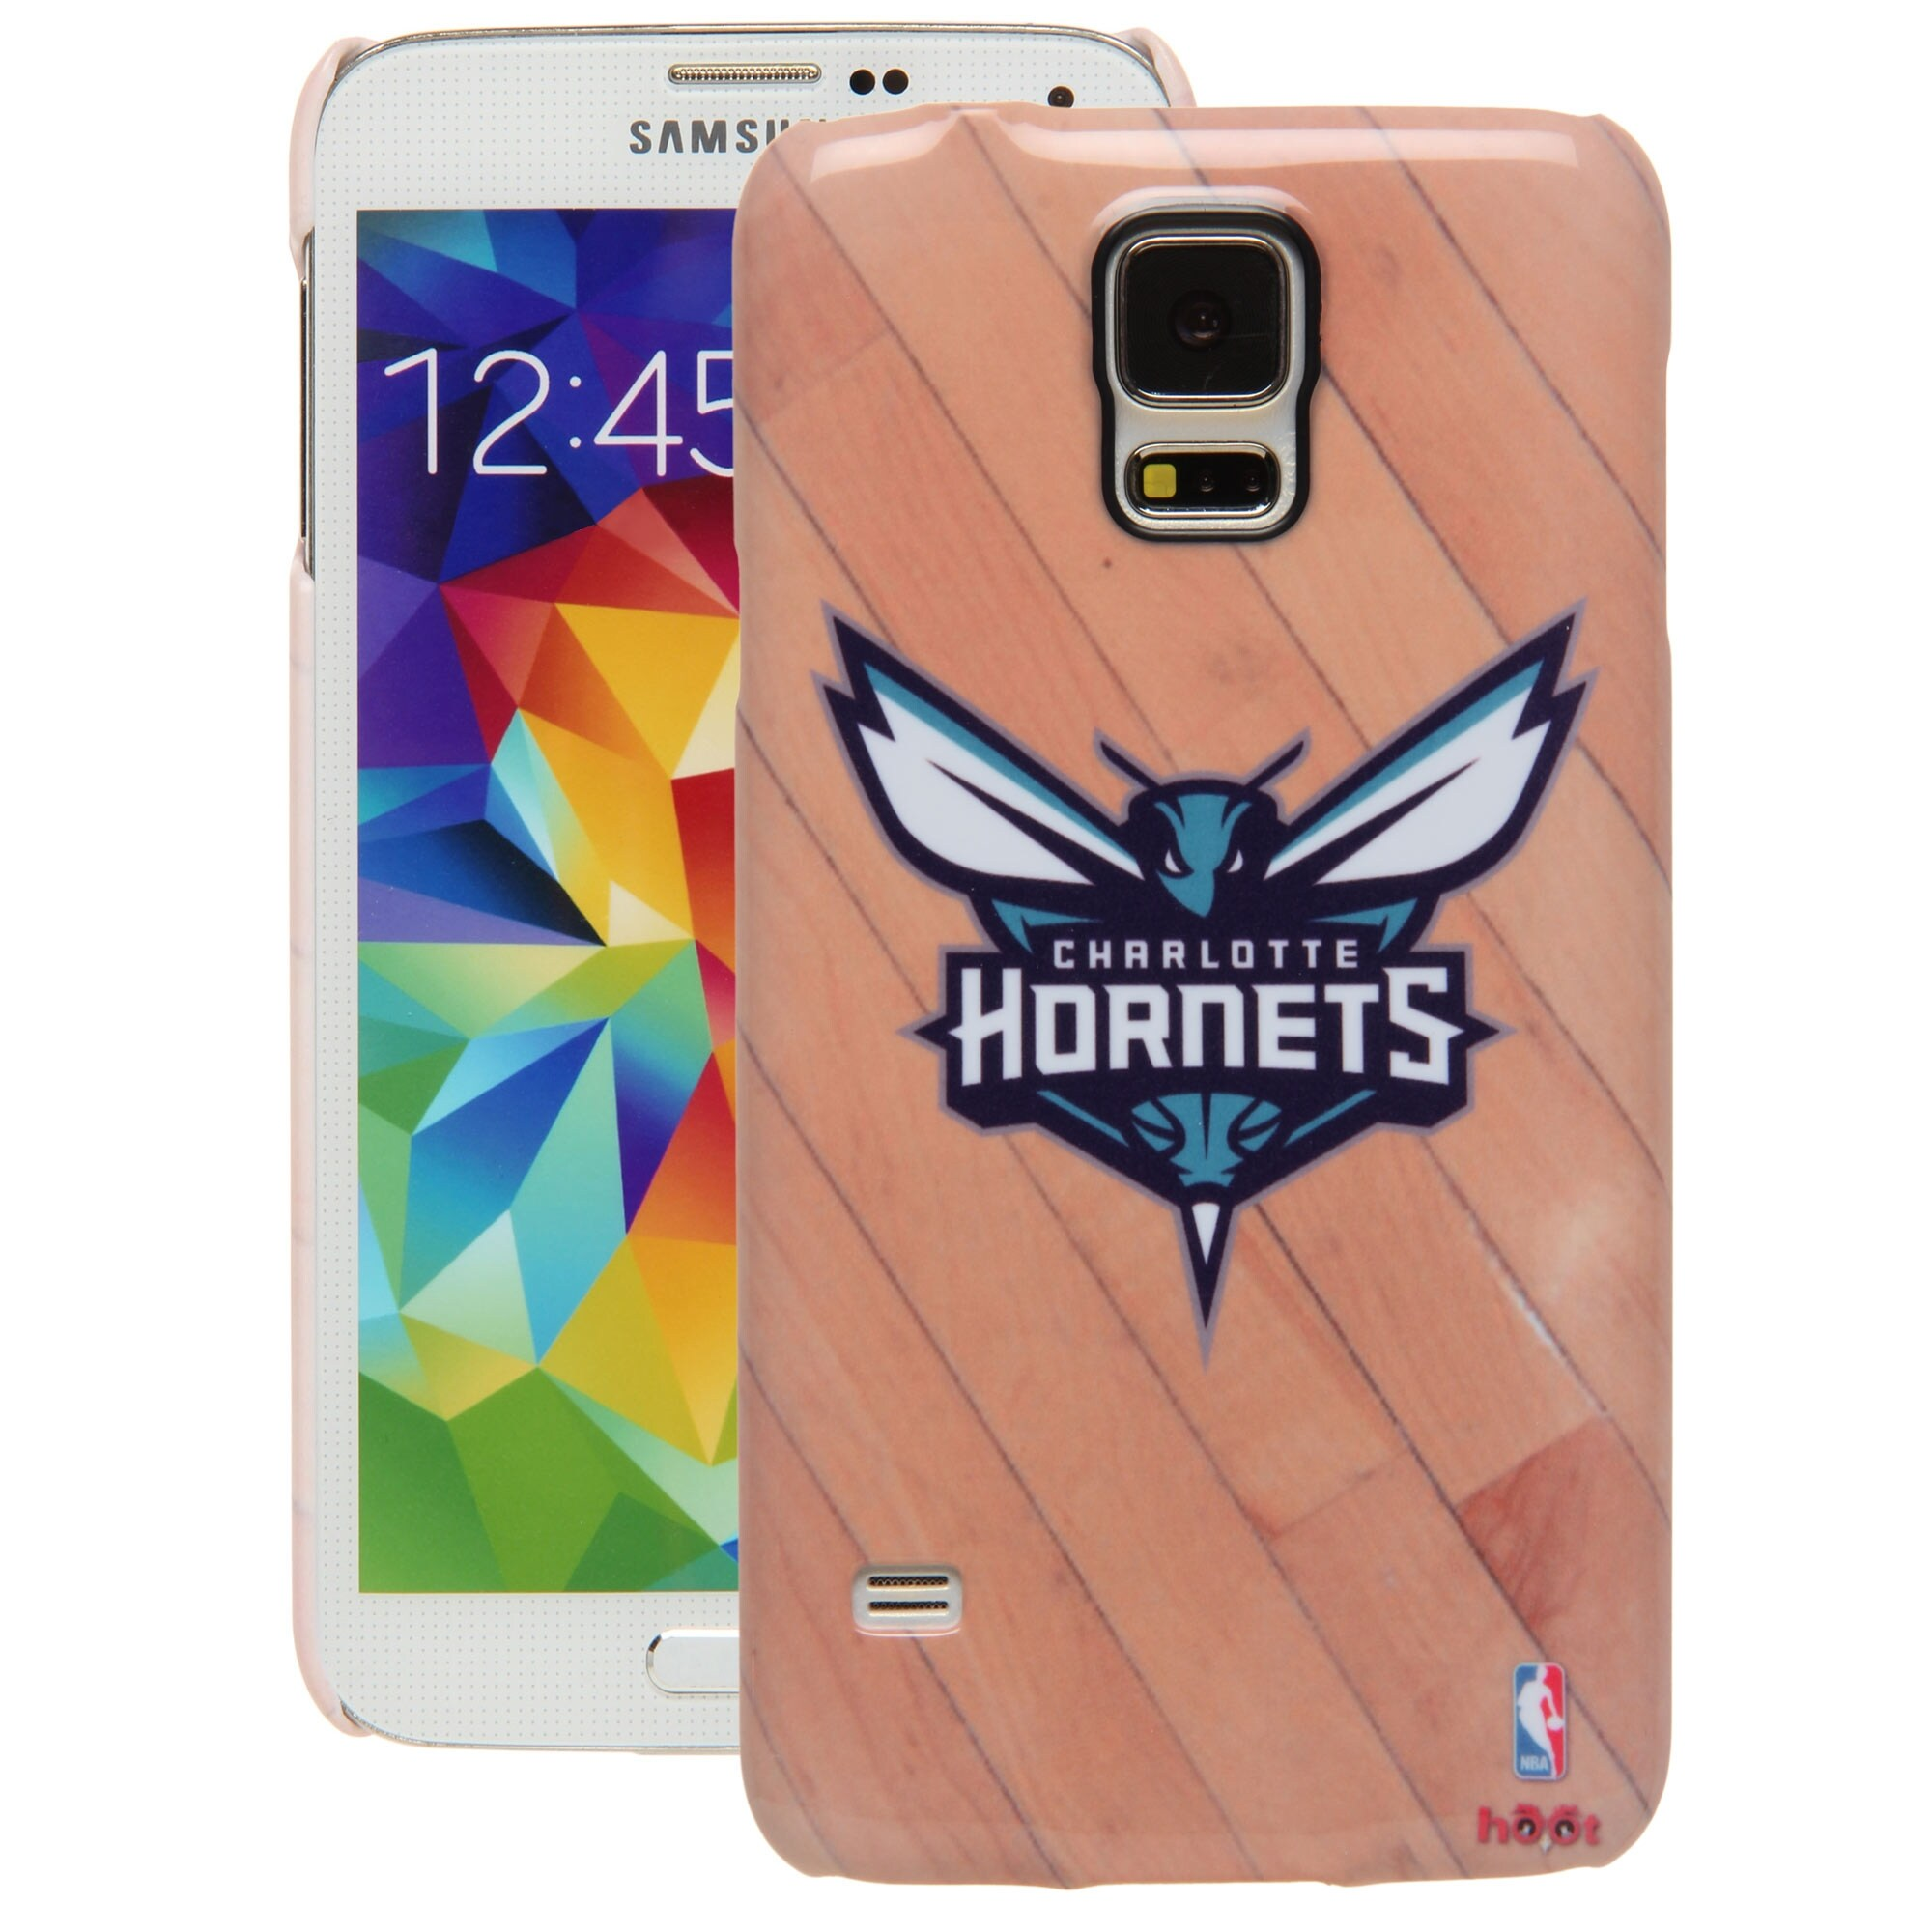 Charlotte Hornets Galaxy S5 Hardwood Court Case